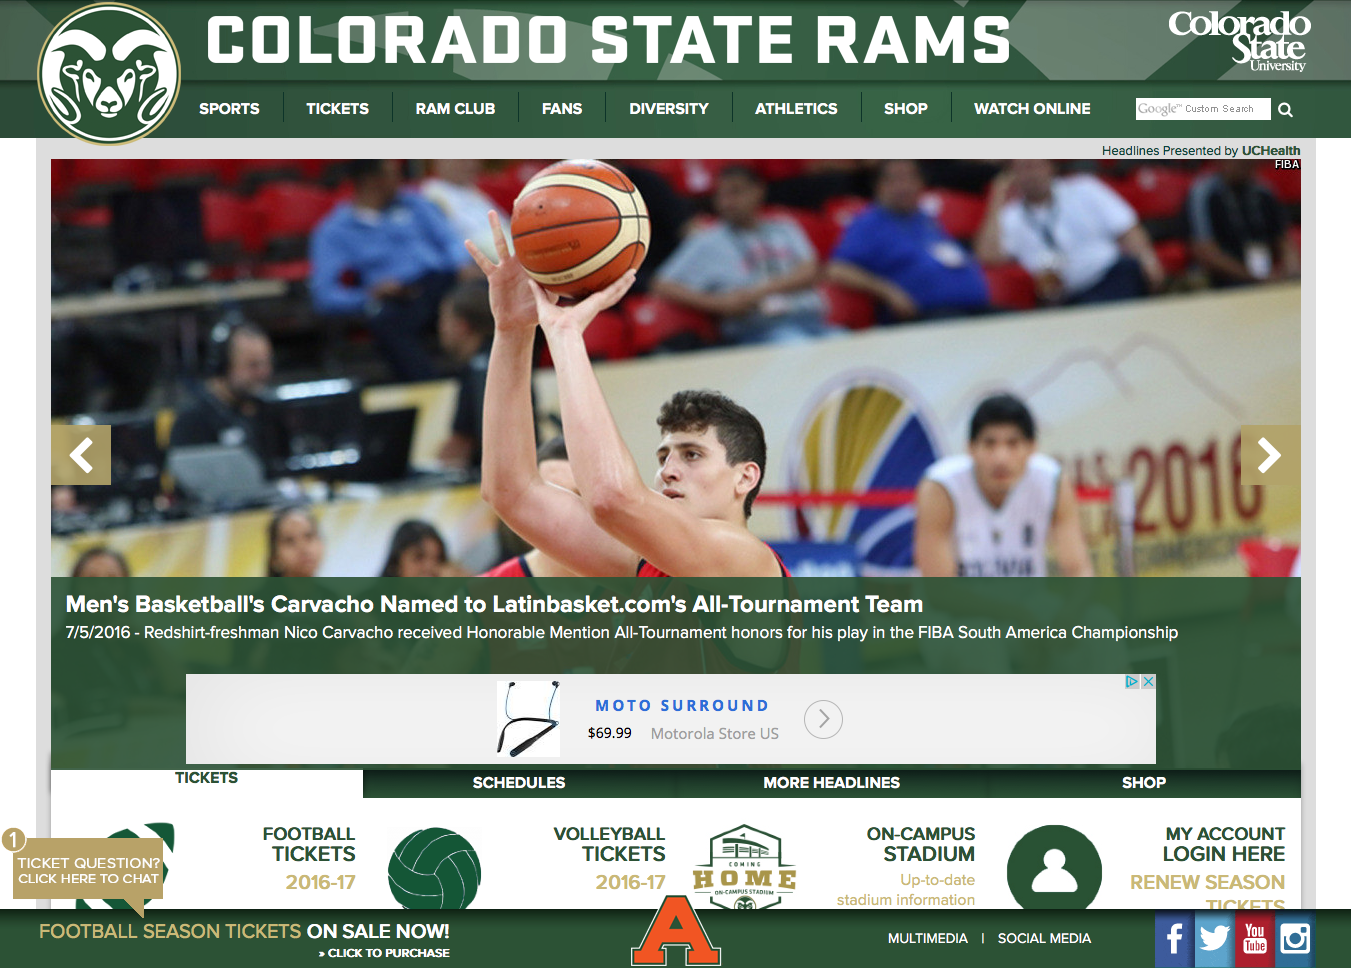 CSURAMS.COM_-_Colorado_State_University_Official_Athletic_Site_-_2016-07-05_15.24.07.png